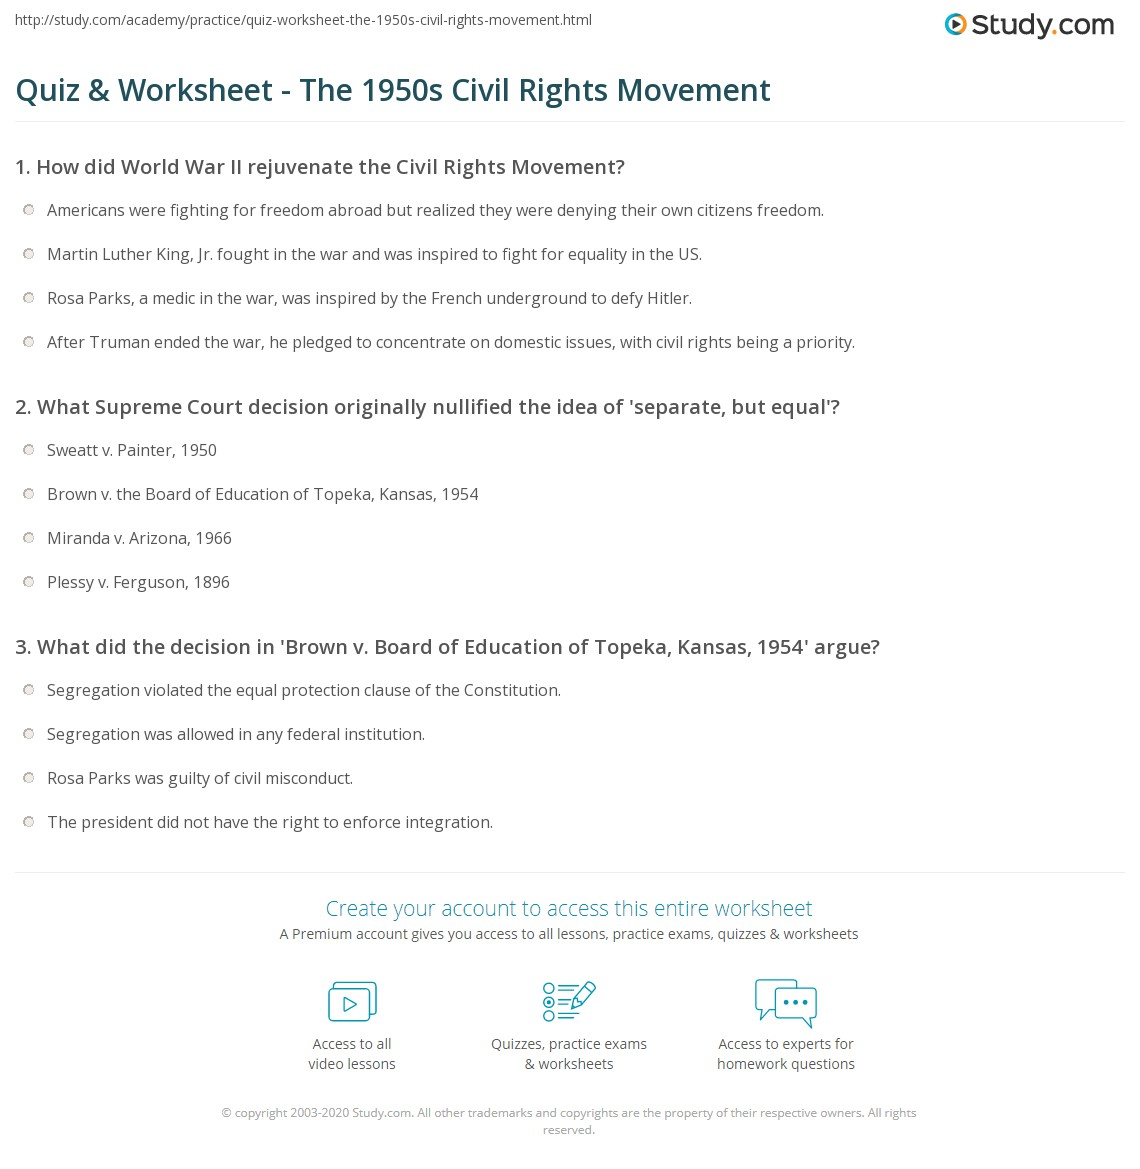 photograph relating to 1950 Trivia Questions and Answers Printable named Quiz Worksheet - The 1950s Civil Legal rights Stream